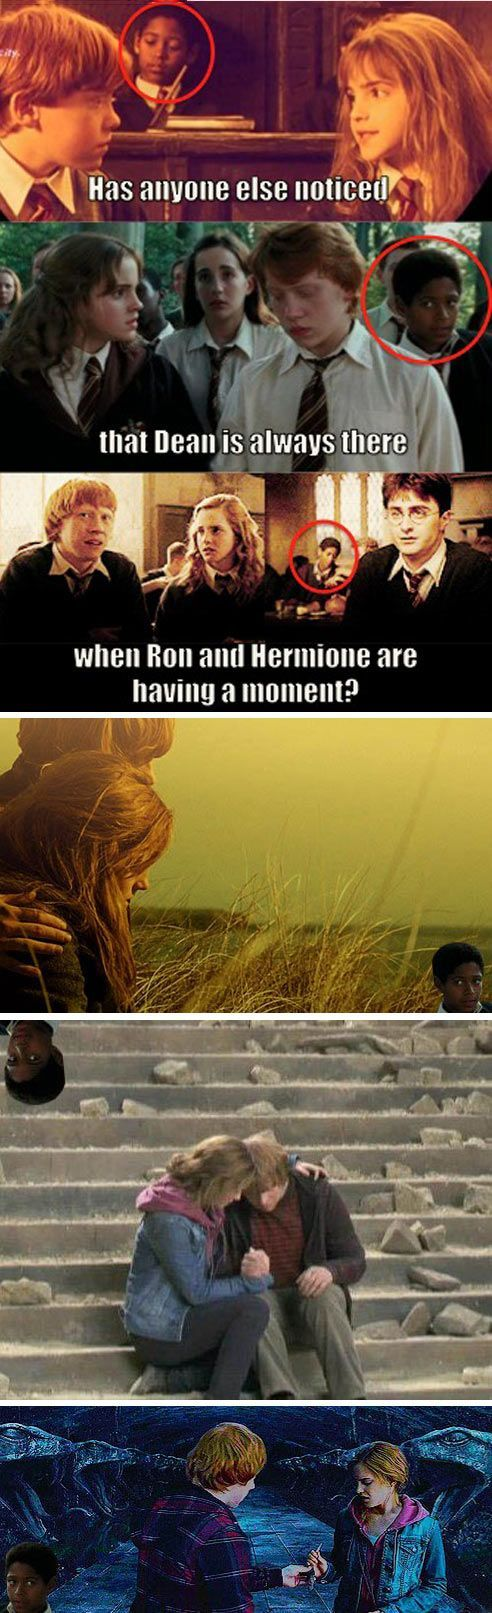 Dean is always there when Ron and Hermione have a moment...